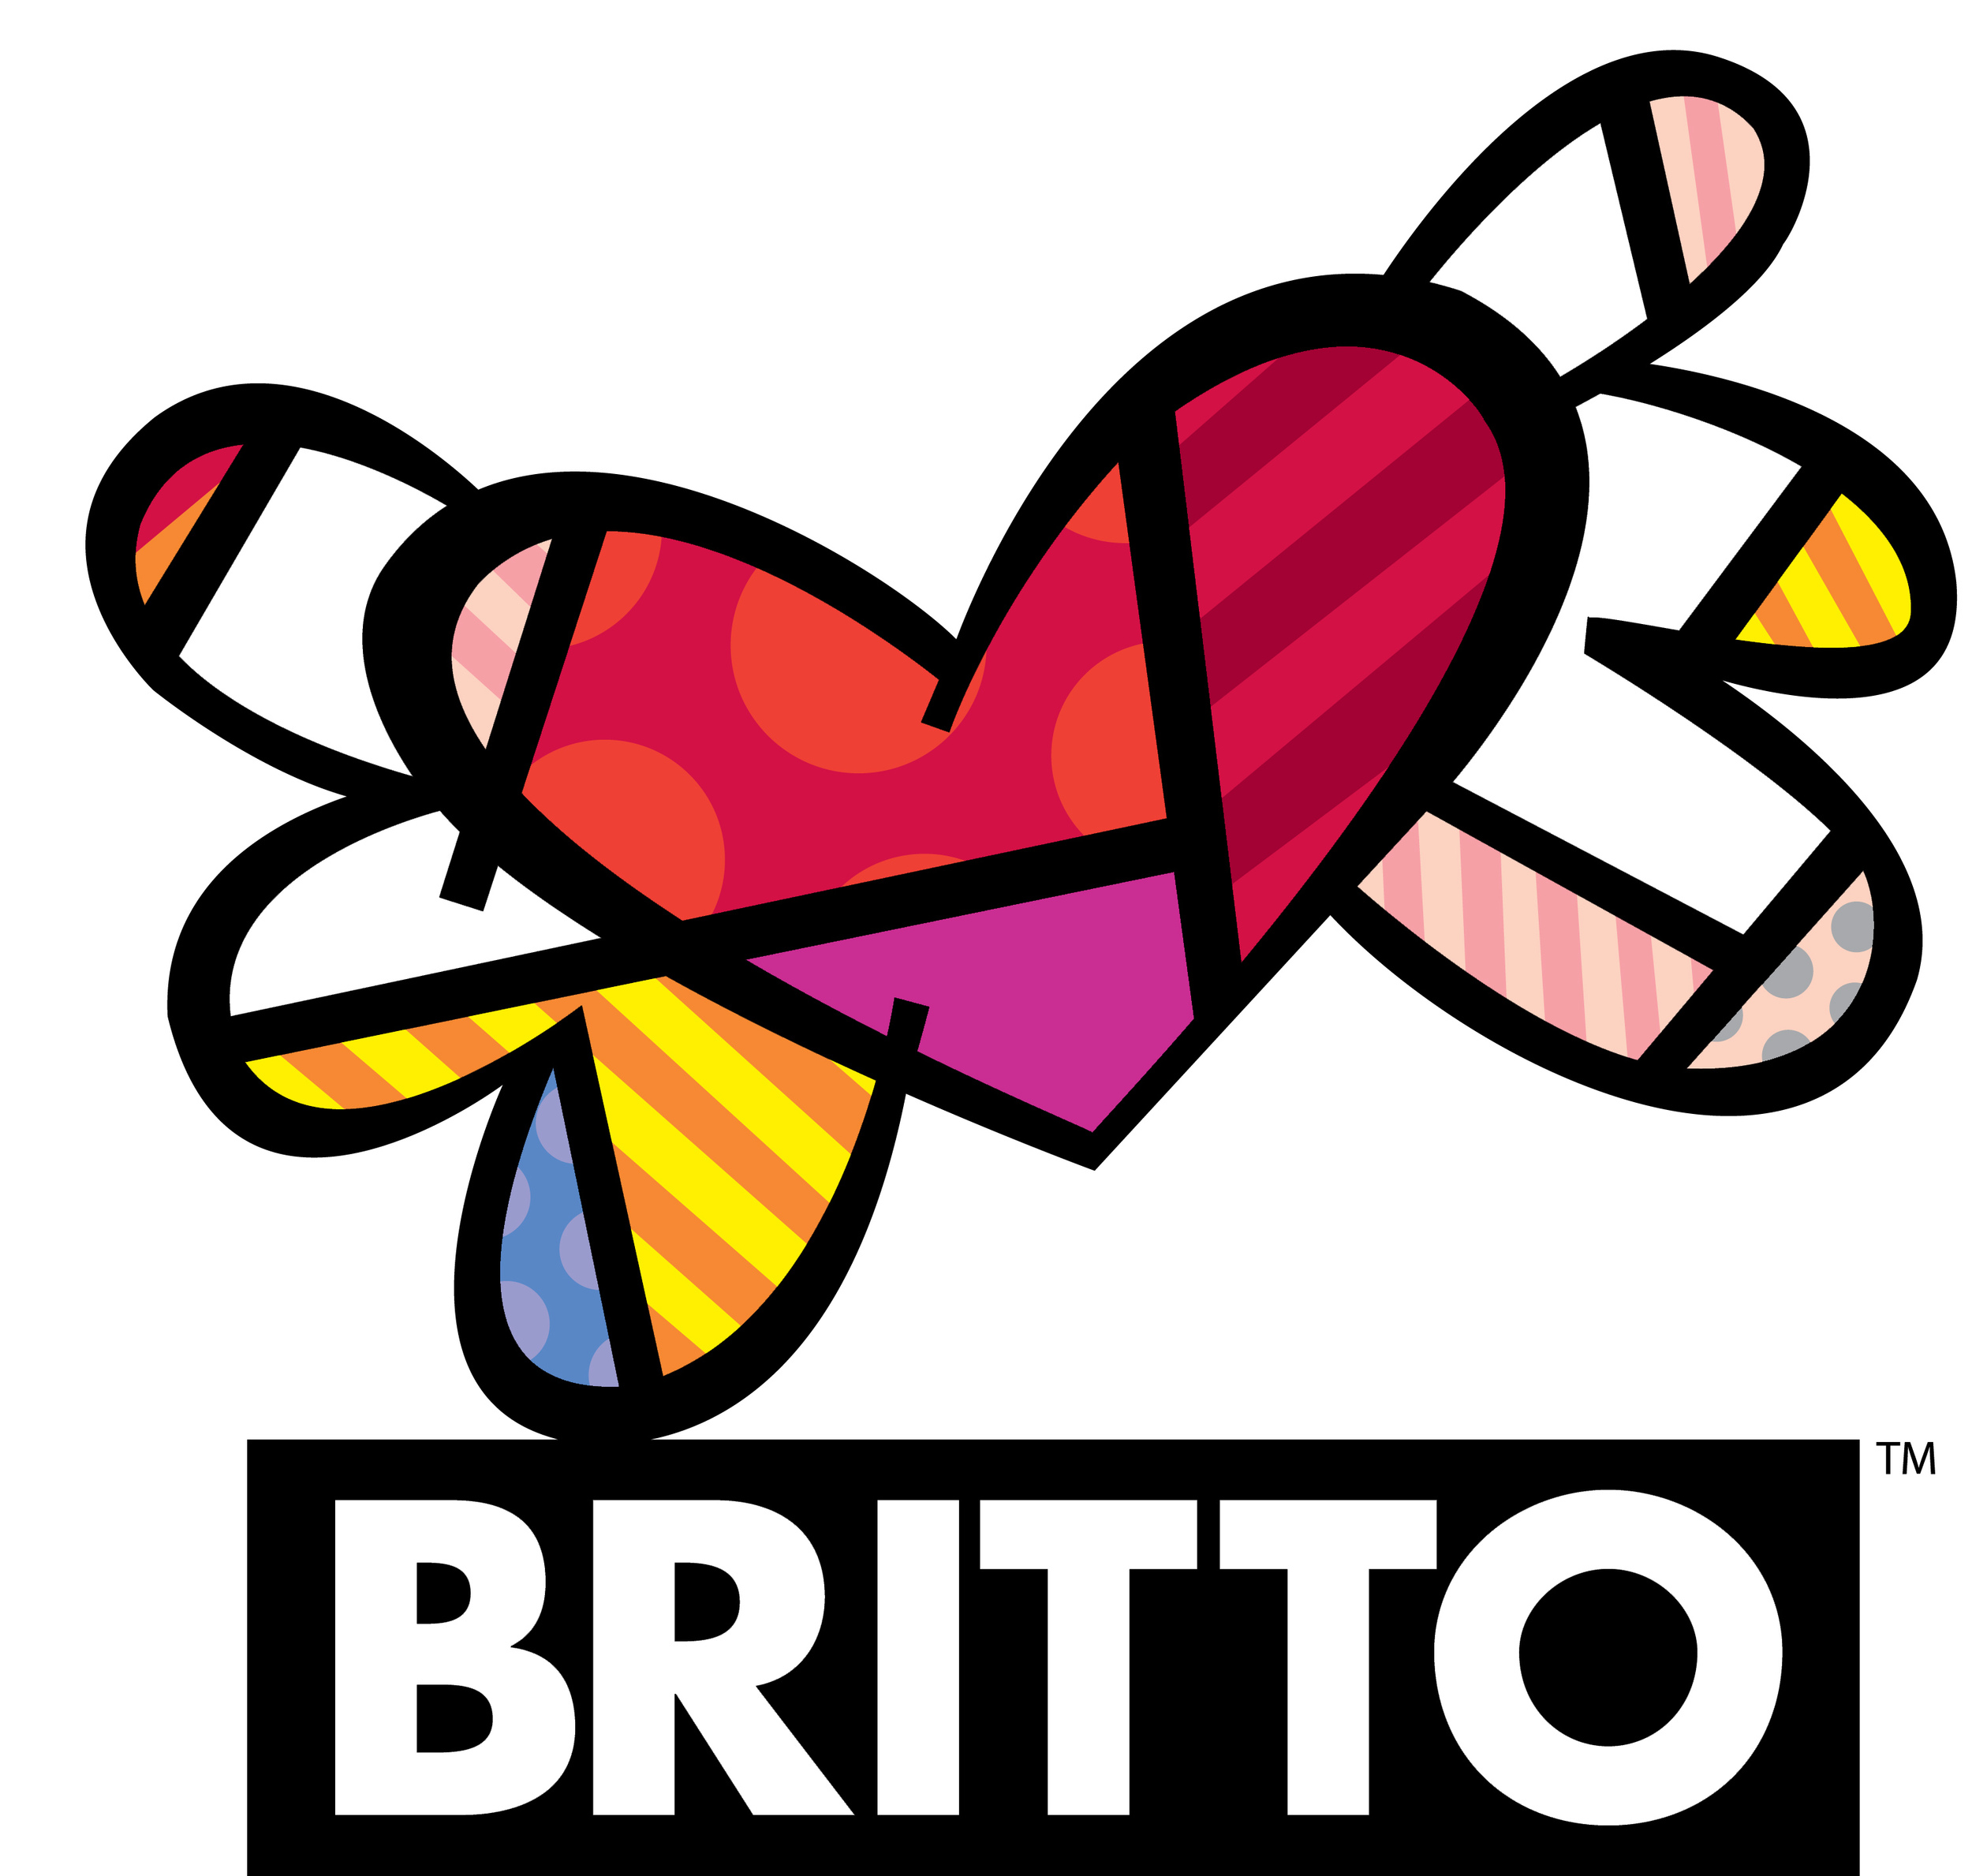 Britto-Heart-with-Wings-Logo-TM.jpg